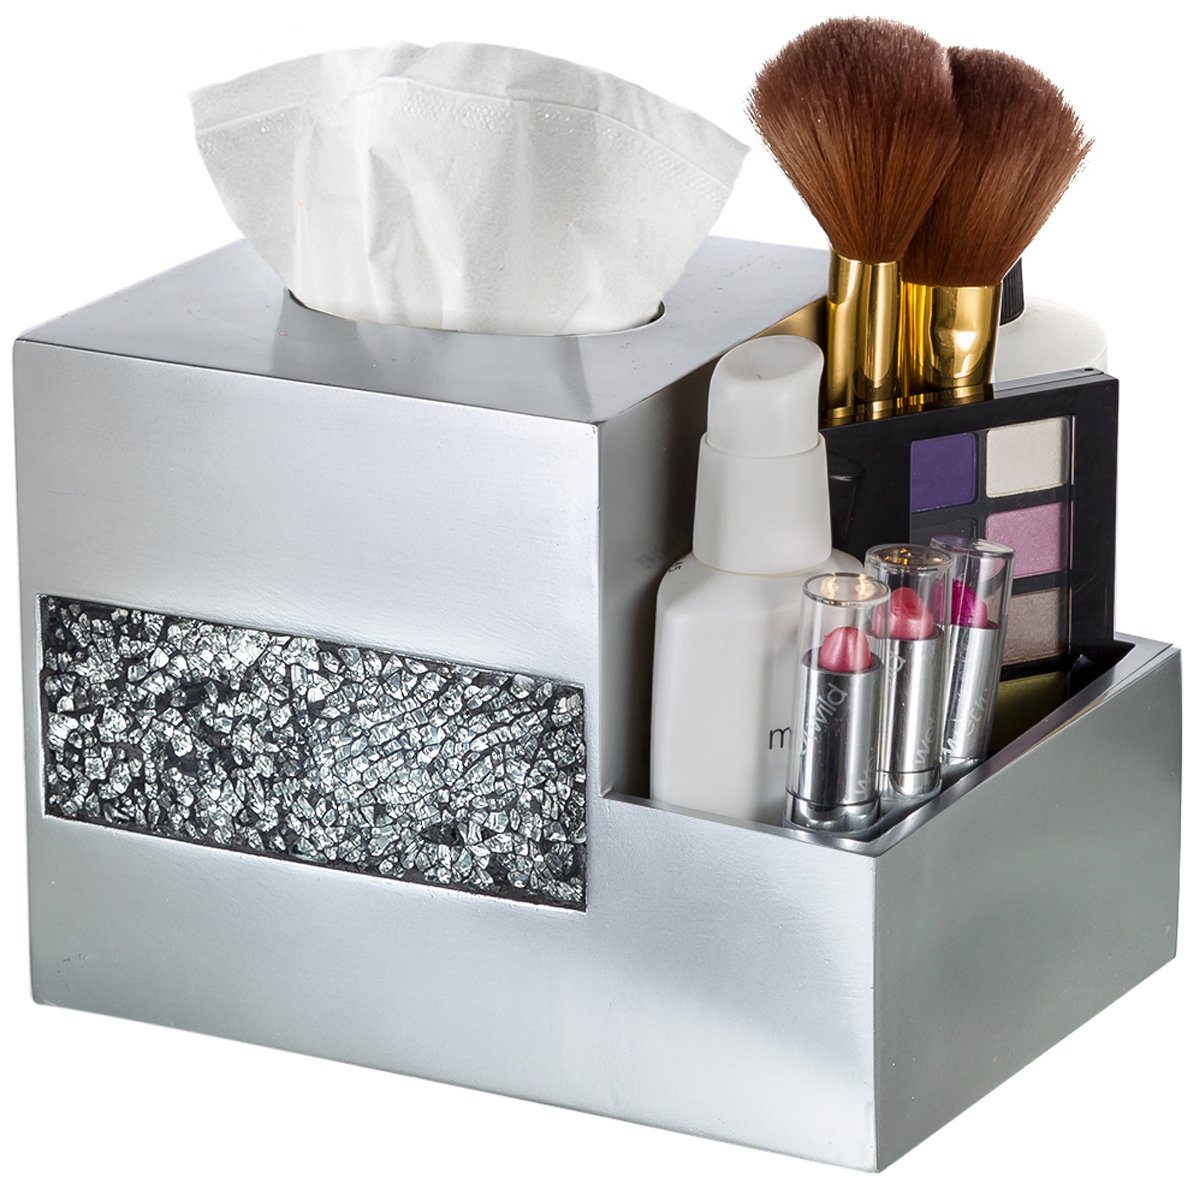 Tissue Box Cover - Wipe Holder - Multi-Function Organizer for Makeup Cosmetics Pen Pencil Remote Control Phone iPad, for Living Room Bathroom Kitchen Office Desktop Table,(Silver) by Creative Scents